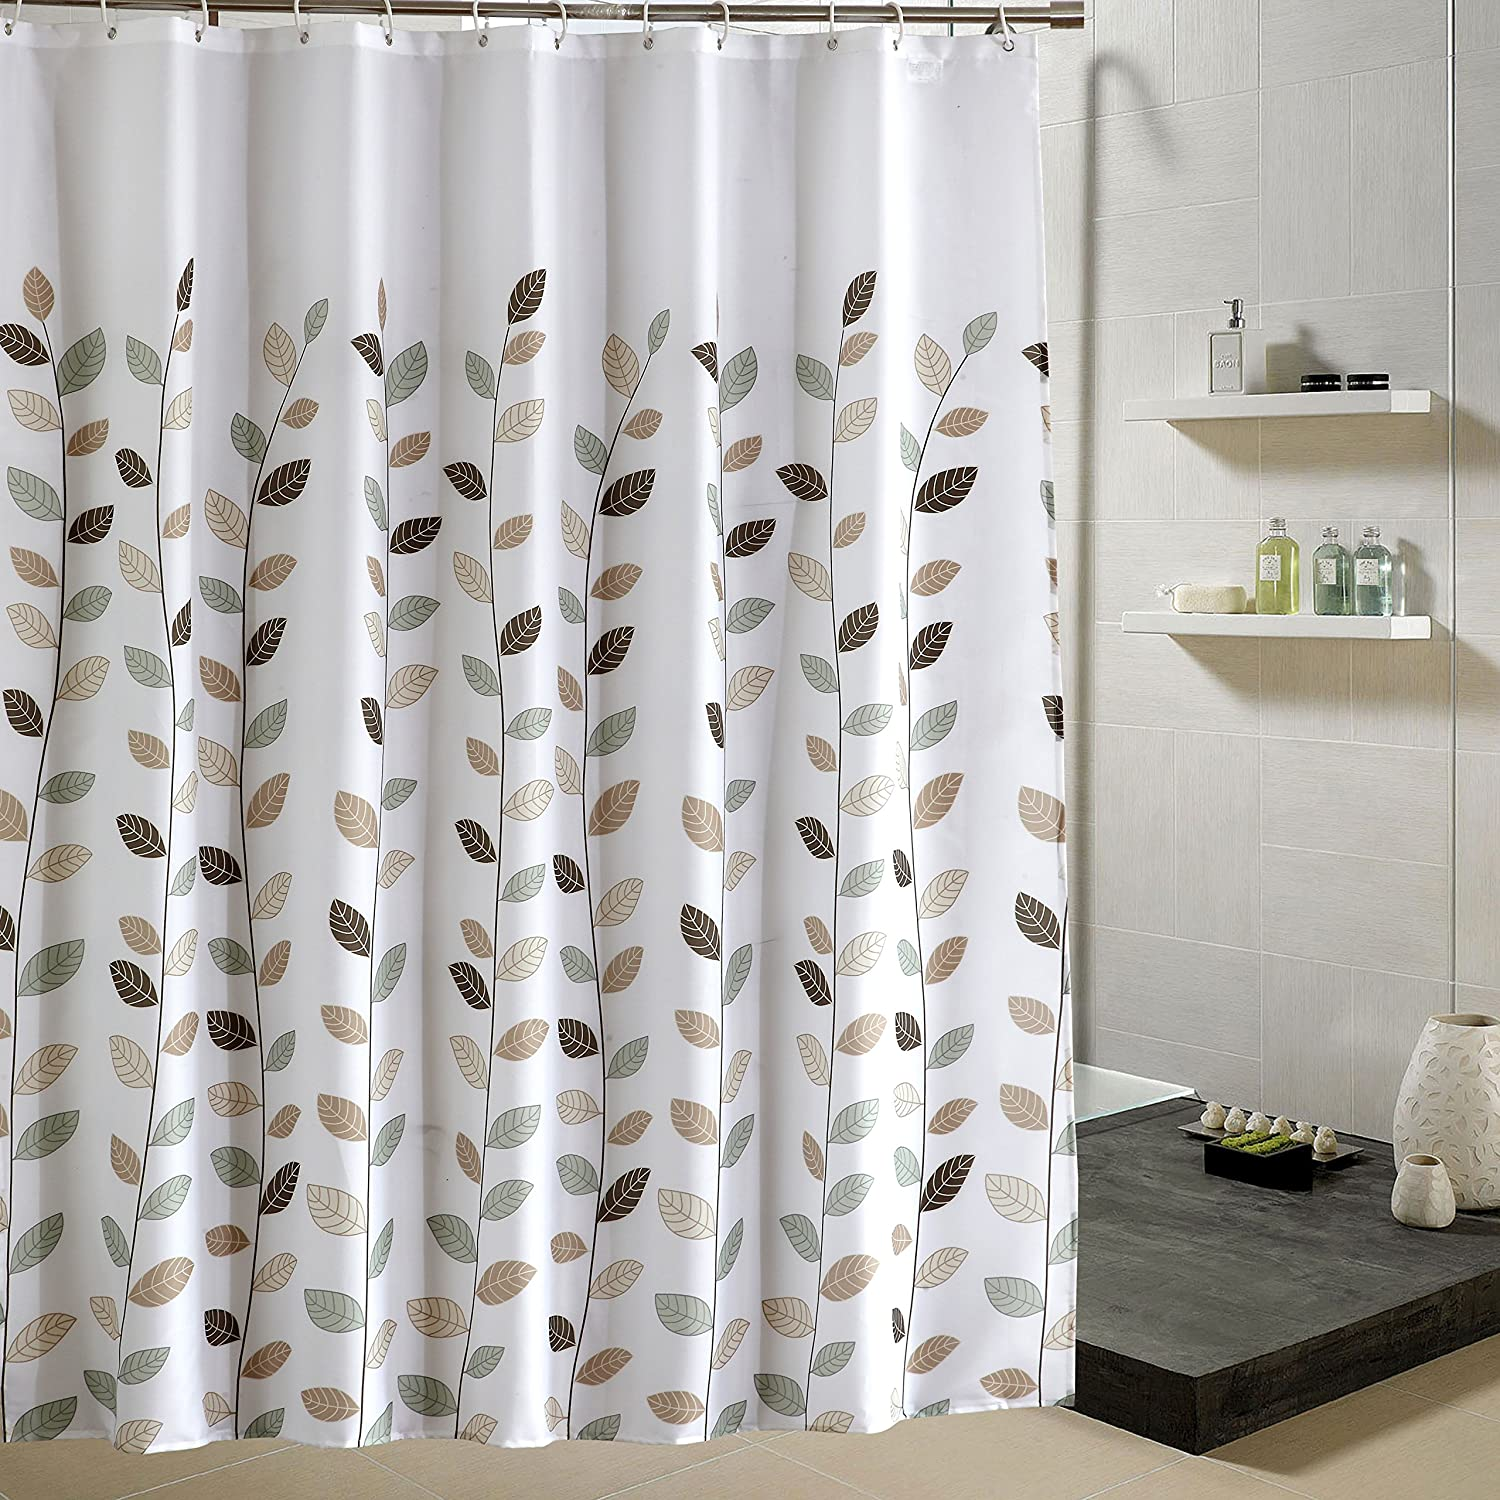 Amazon Dolii Fall Leaves Printed Shower Curtain For Bathroom Polyester Fabric With HooksLittle Leaf72x72 Home Kitchen